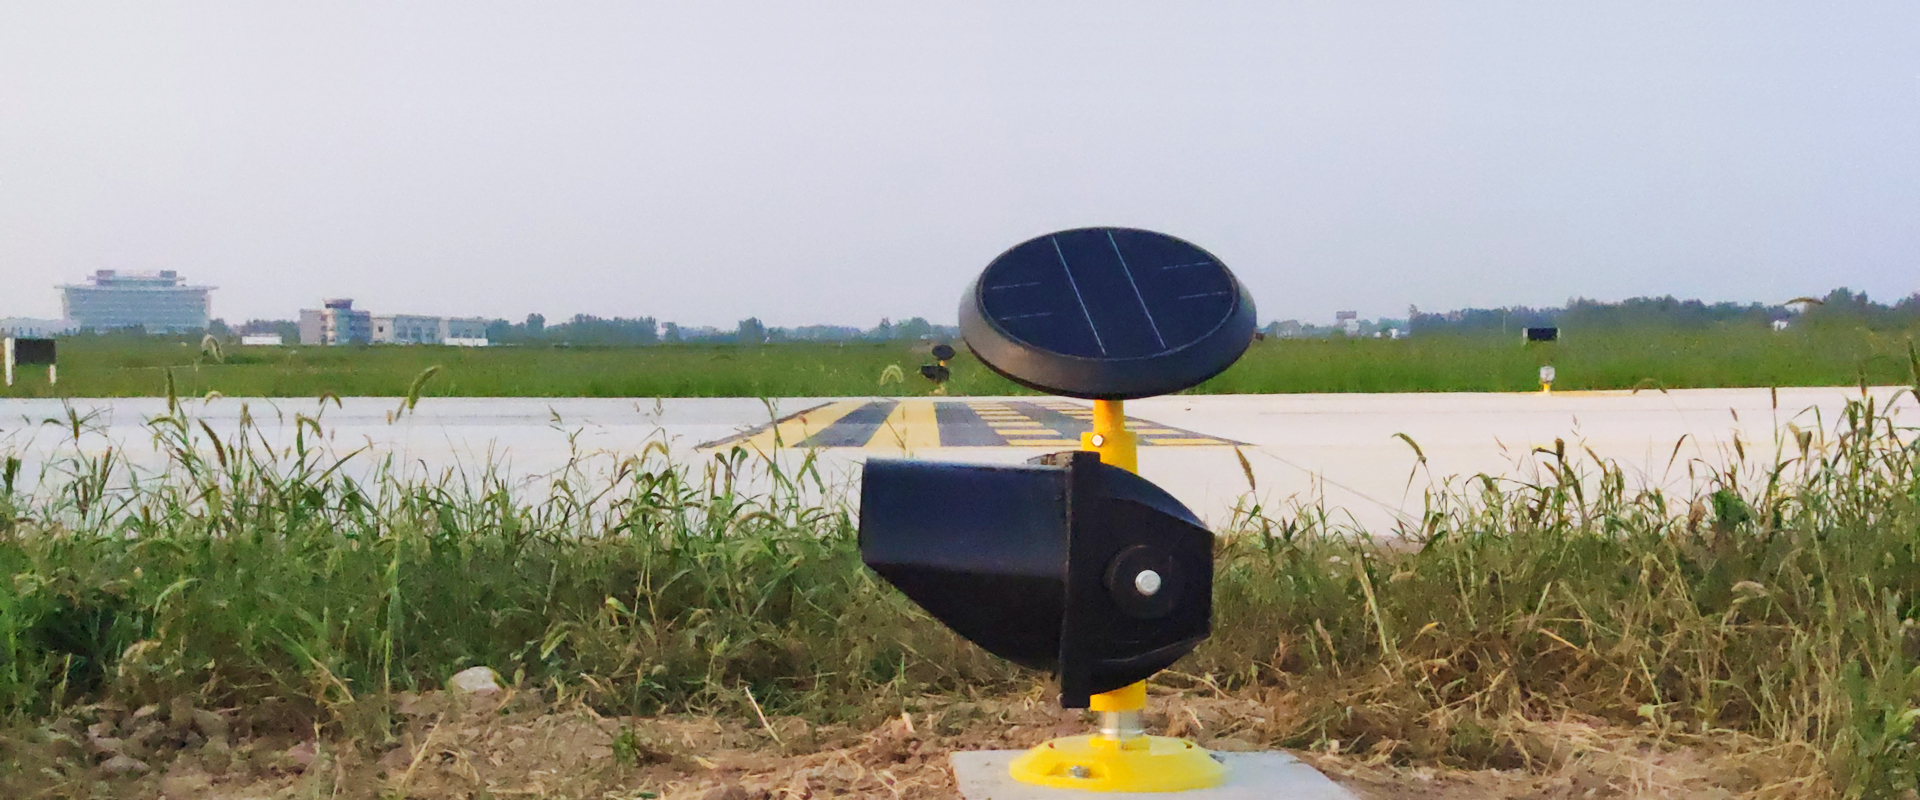 Solar Airfield lighting system